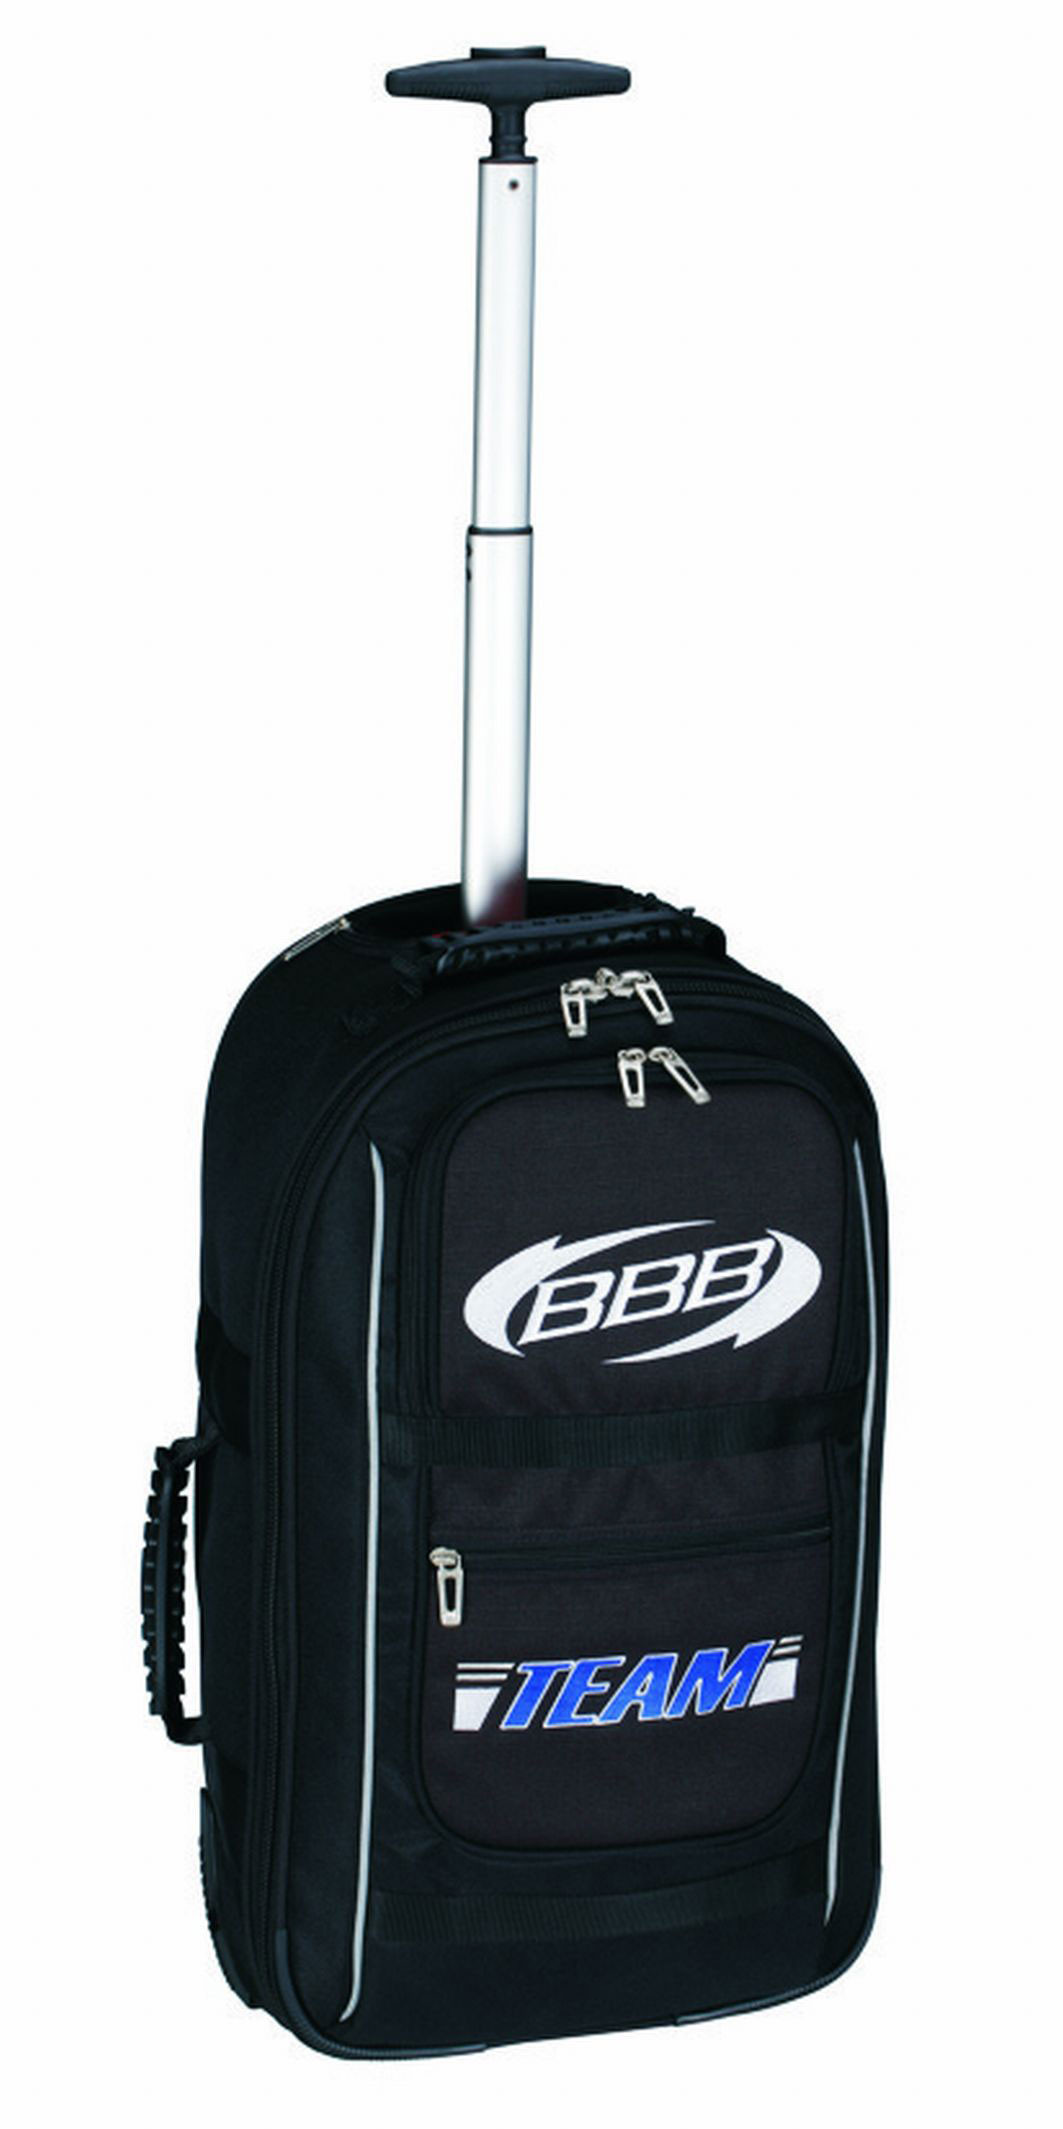 Trolley Tasche Bbb Trolley Tasche Trolleybag Bsb 194 Bbb Bicycles Parts Sporttaschen Reisetaschen Transport St Distribution